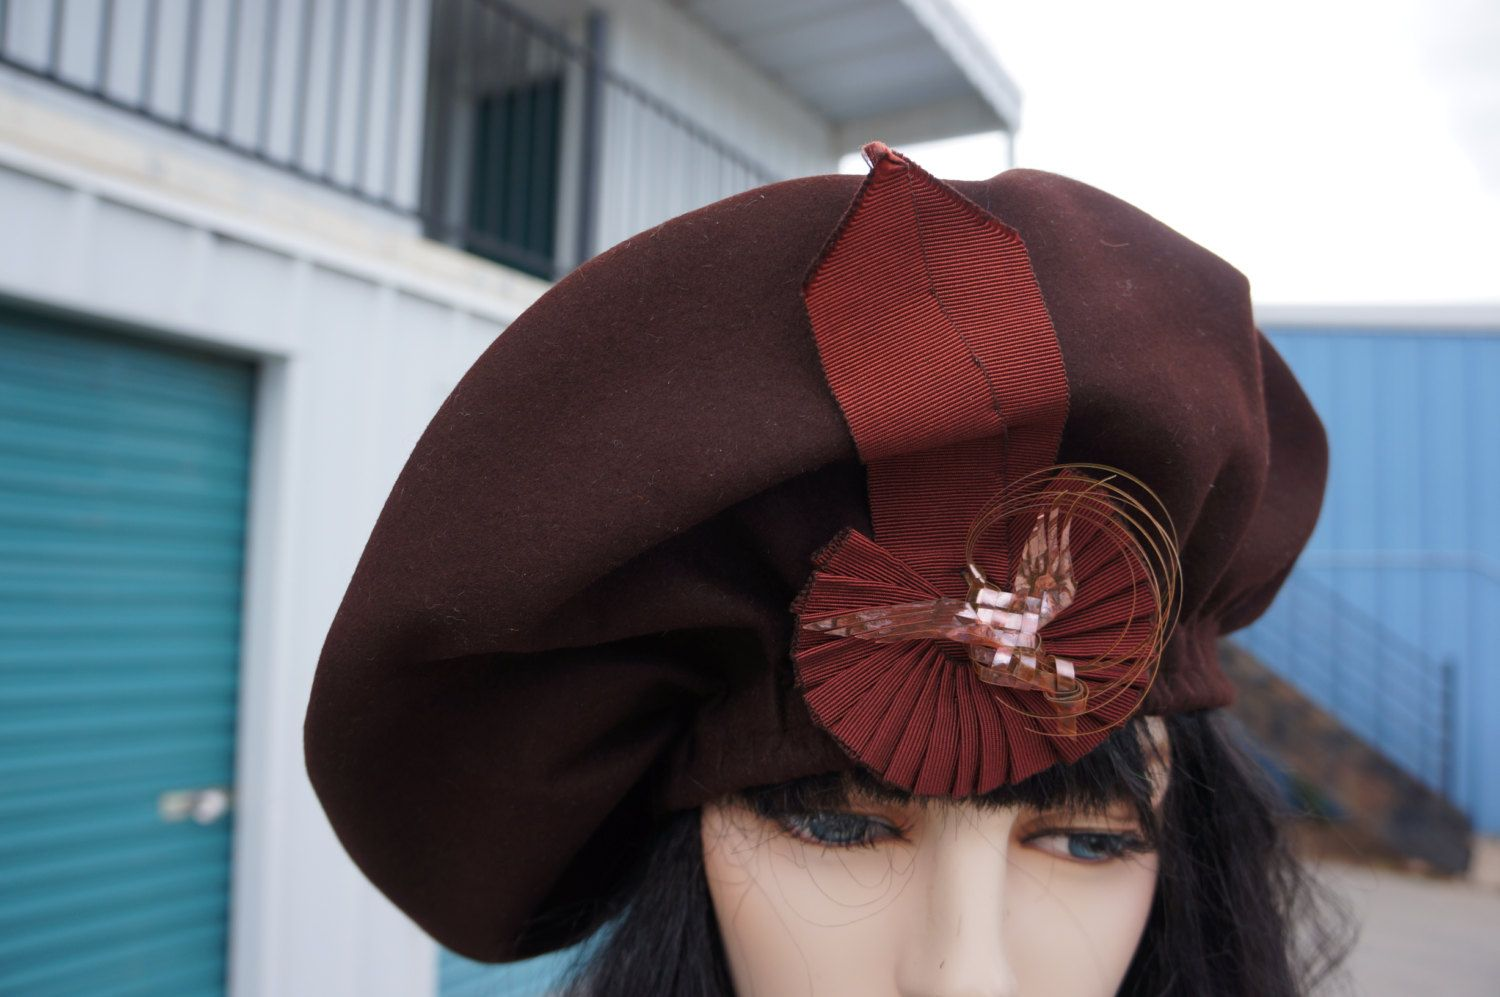 edcc1bb06b1fd Rare 1940s Millinery Over Sized Wool Beret Architectural Hat